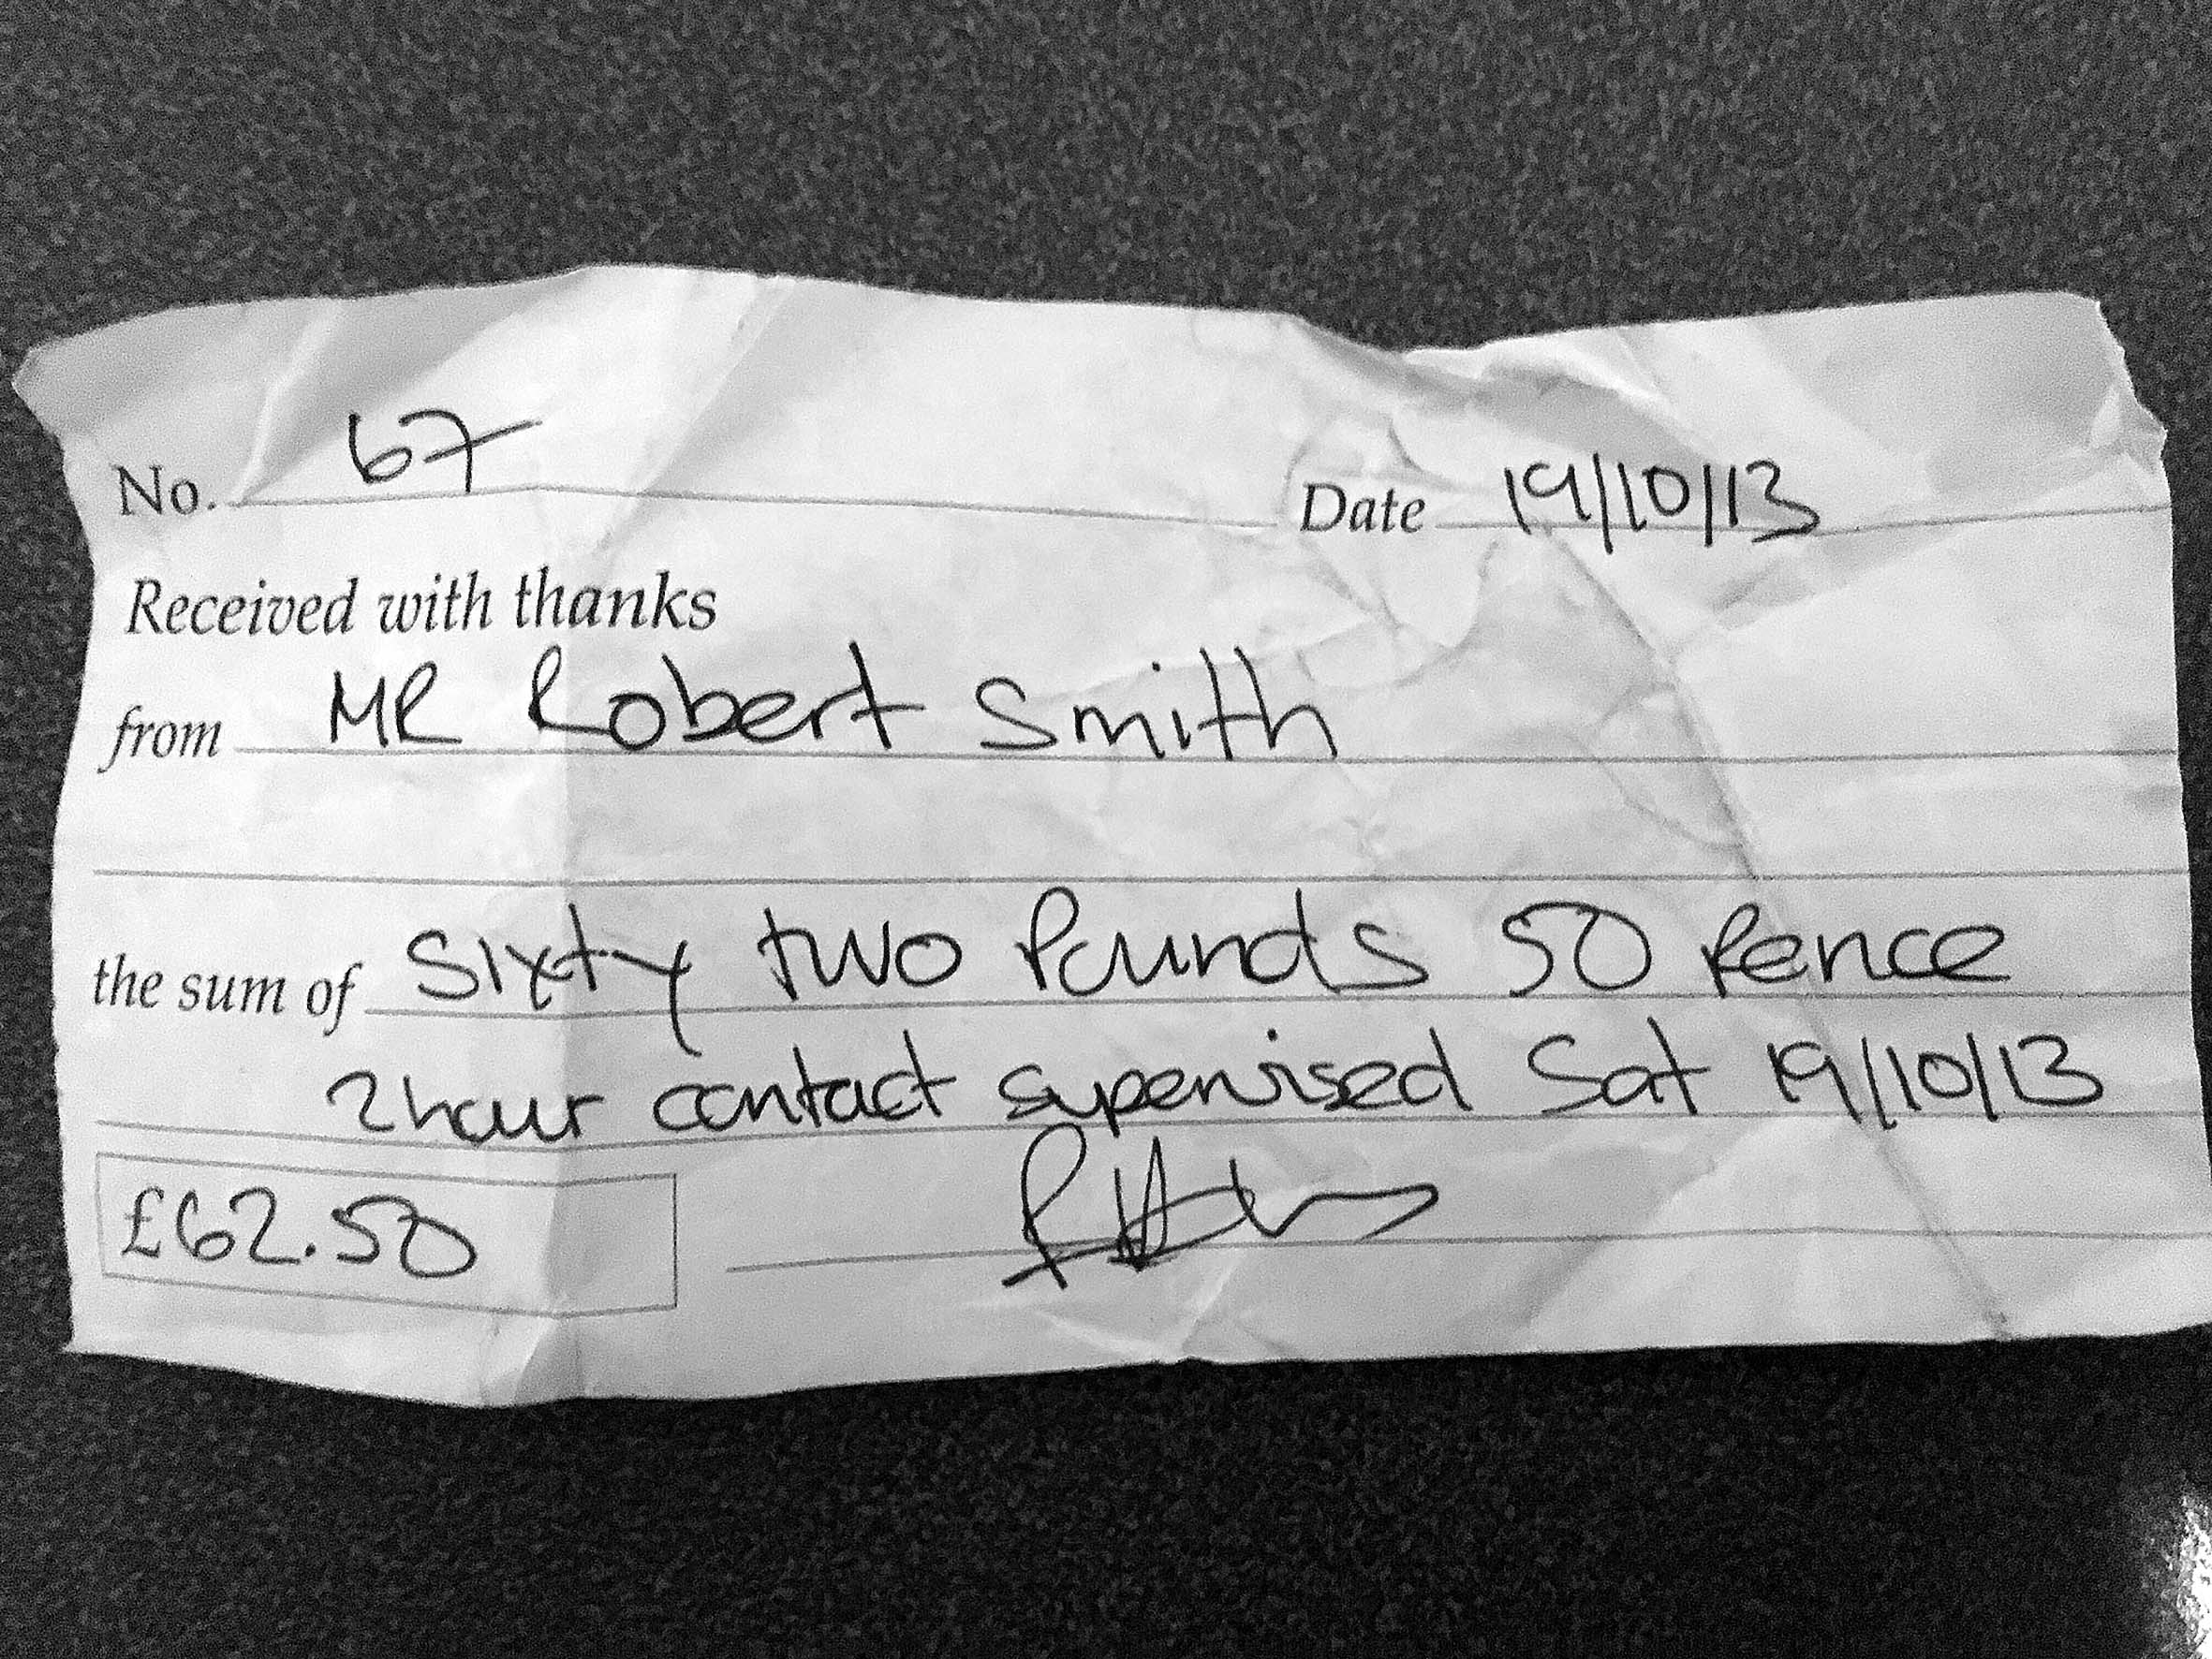 contact-payment-slip